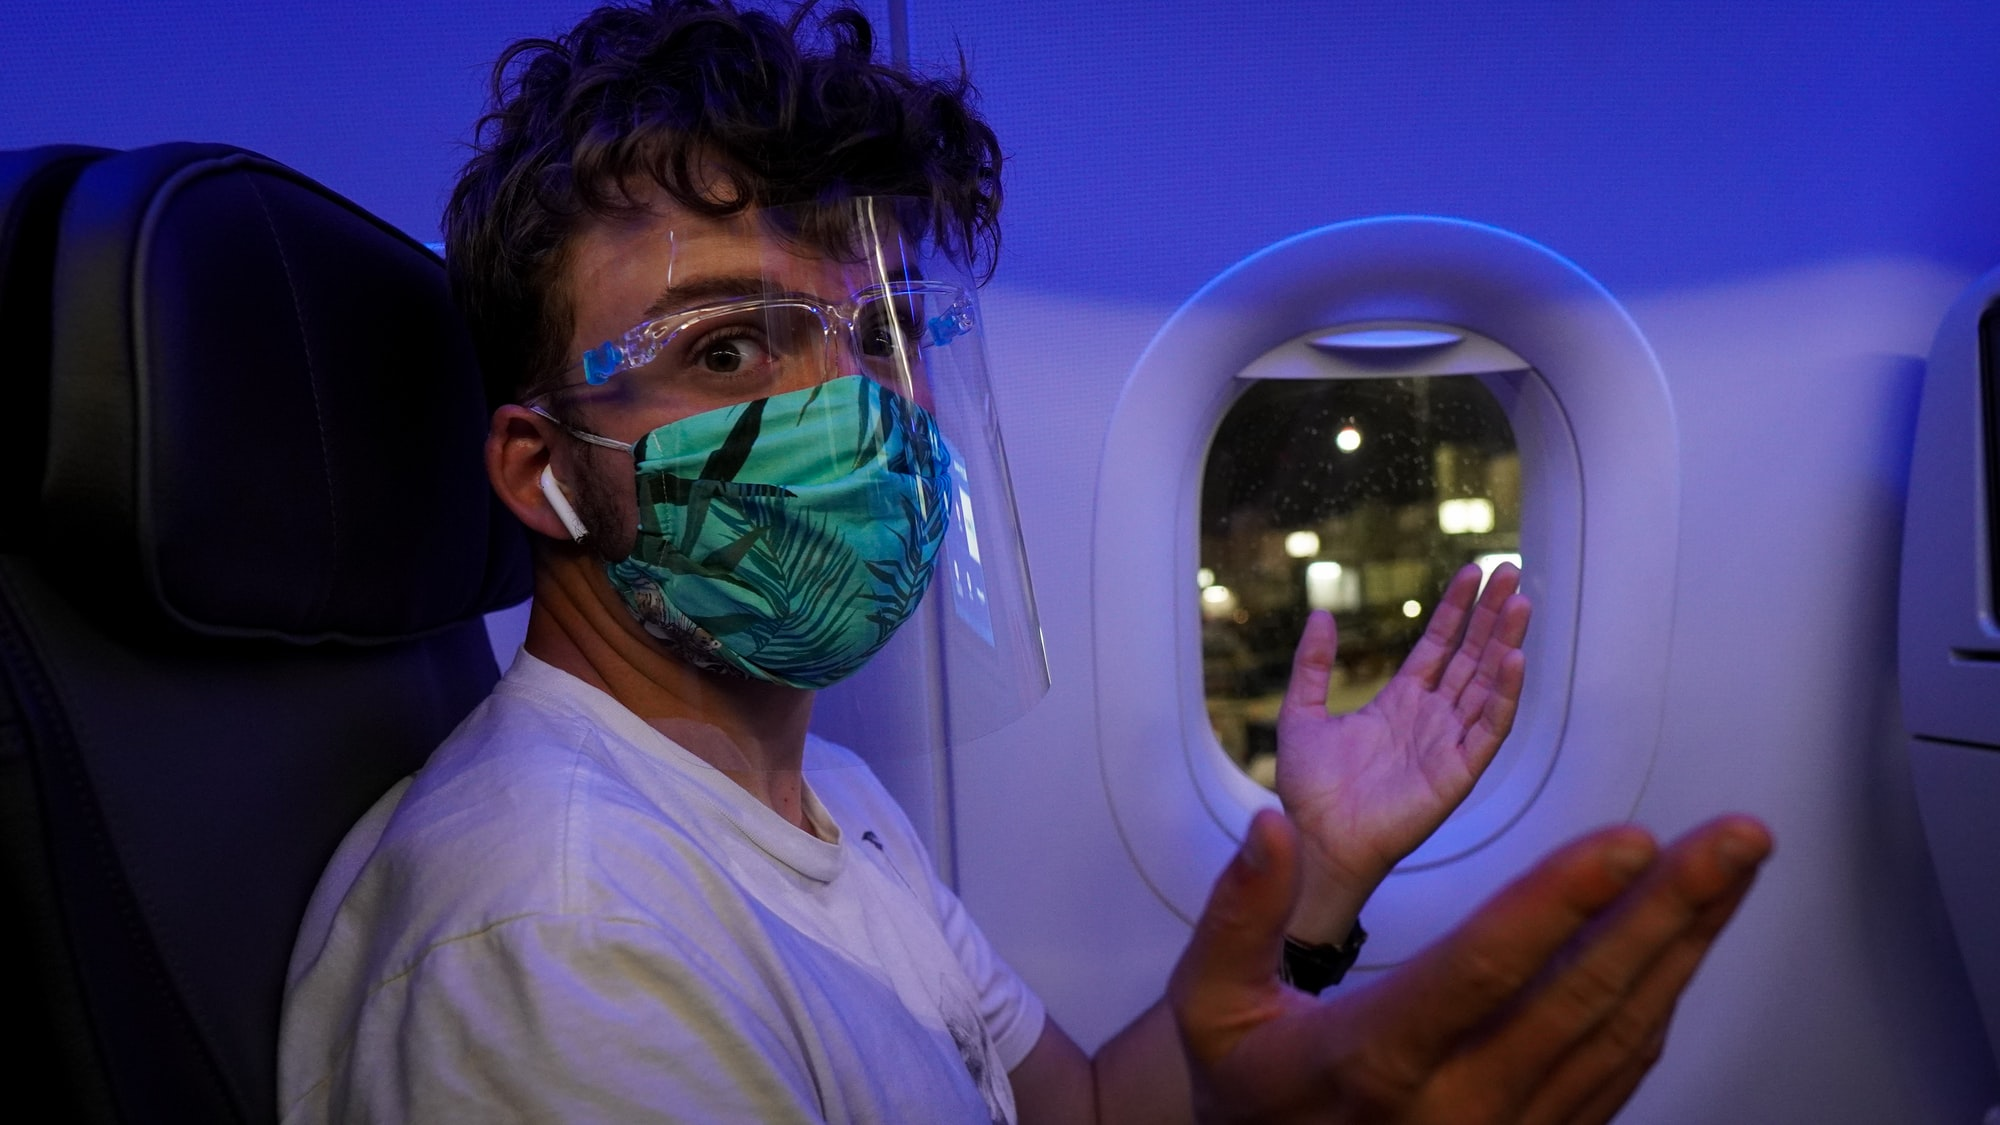 What the new CDC mask guidelines mean for travelers